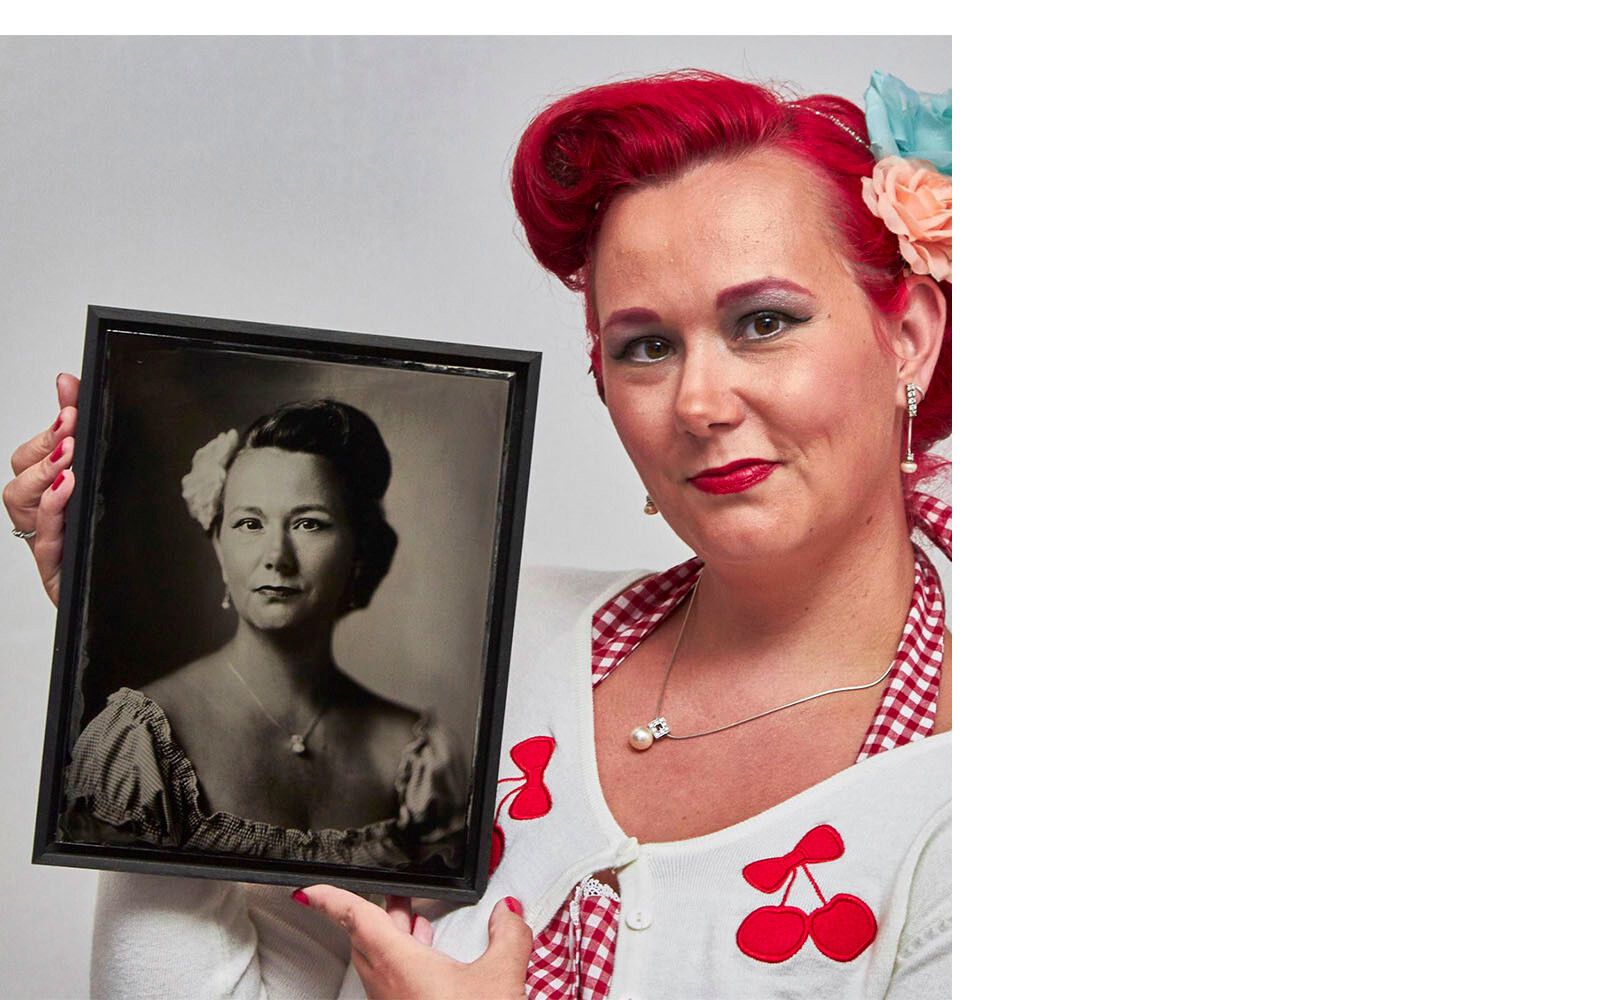 Sylvana wint de William Rutten Silver Portrait/tintype win-aktie op FB.